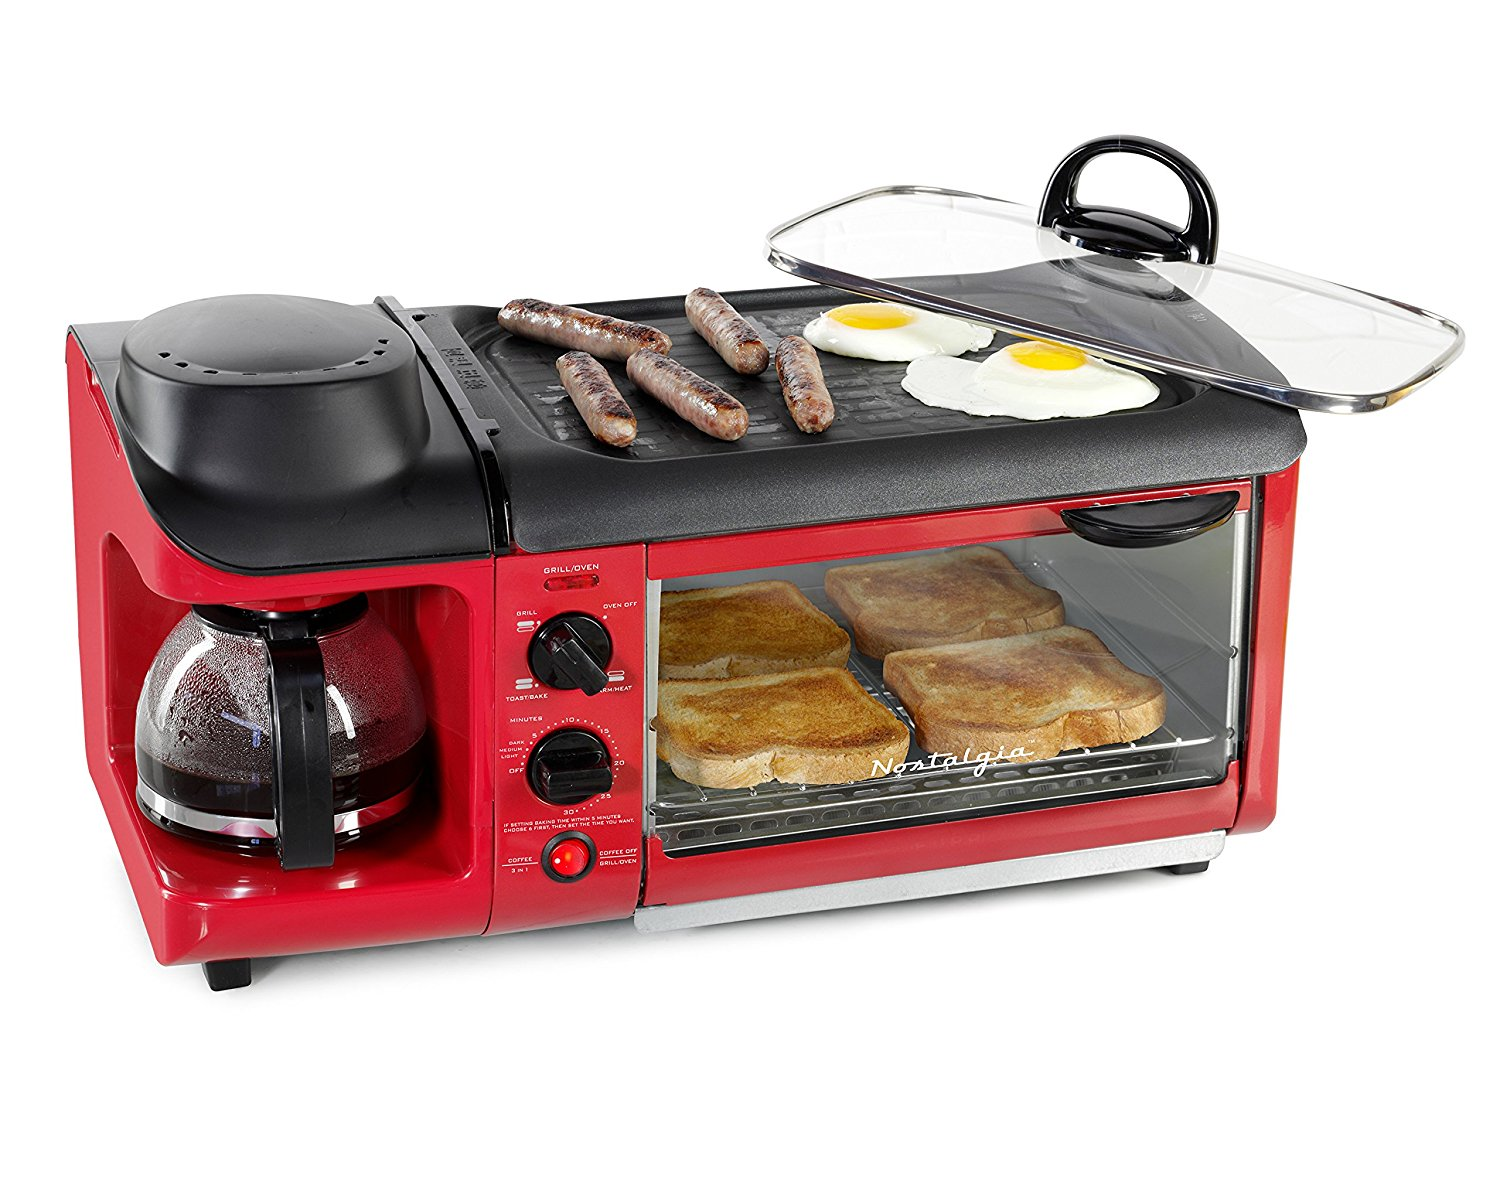 retro kitchen appliances 8 best decor items 3-in-1 breakfast maker